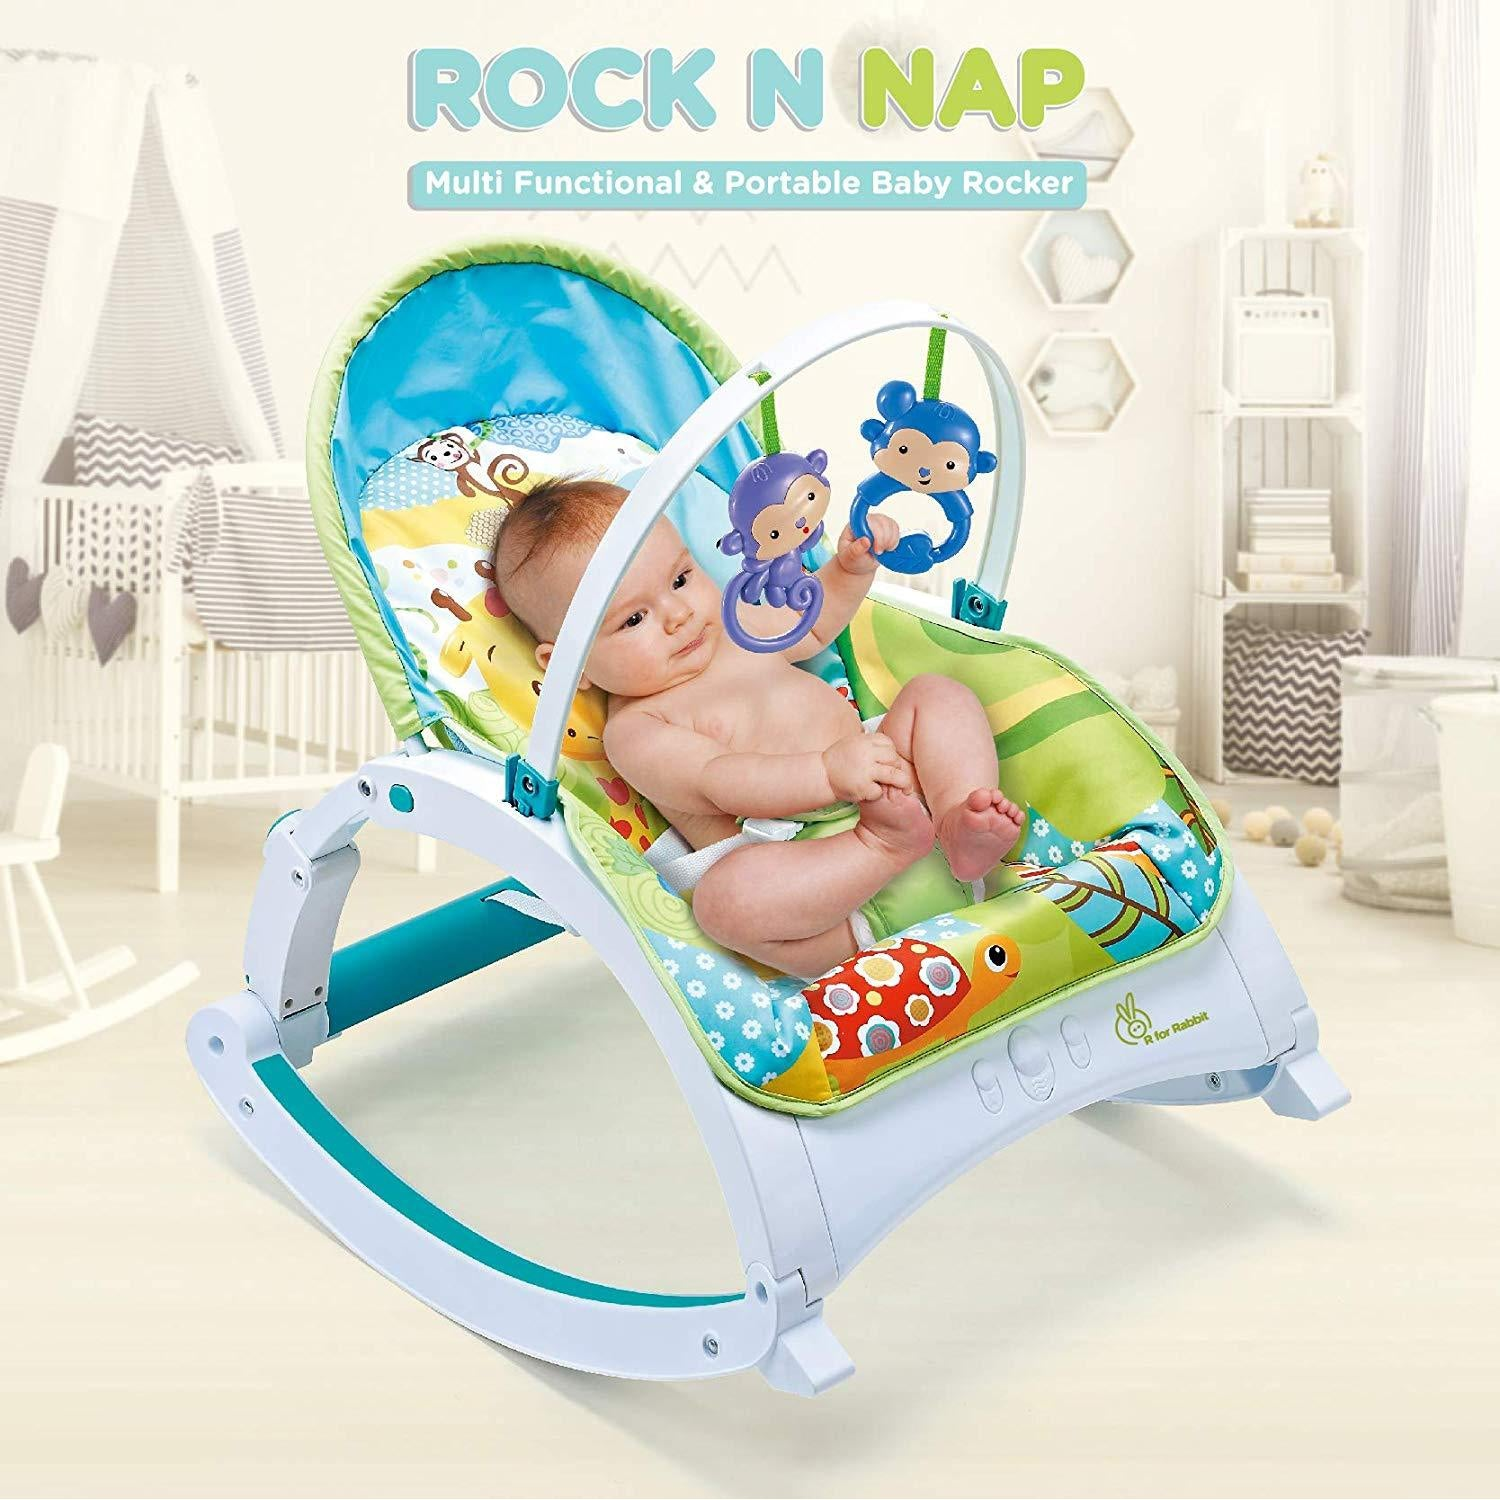 R for Rabbit Rock N Nap Baby Rocker Musical Rockers for Babies